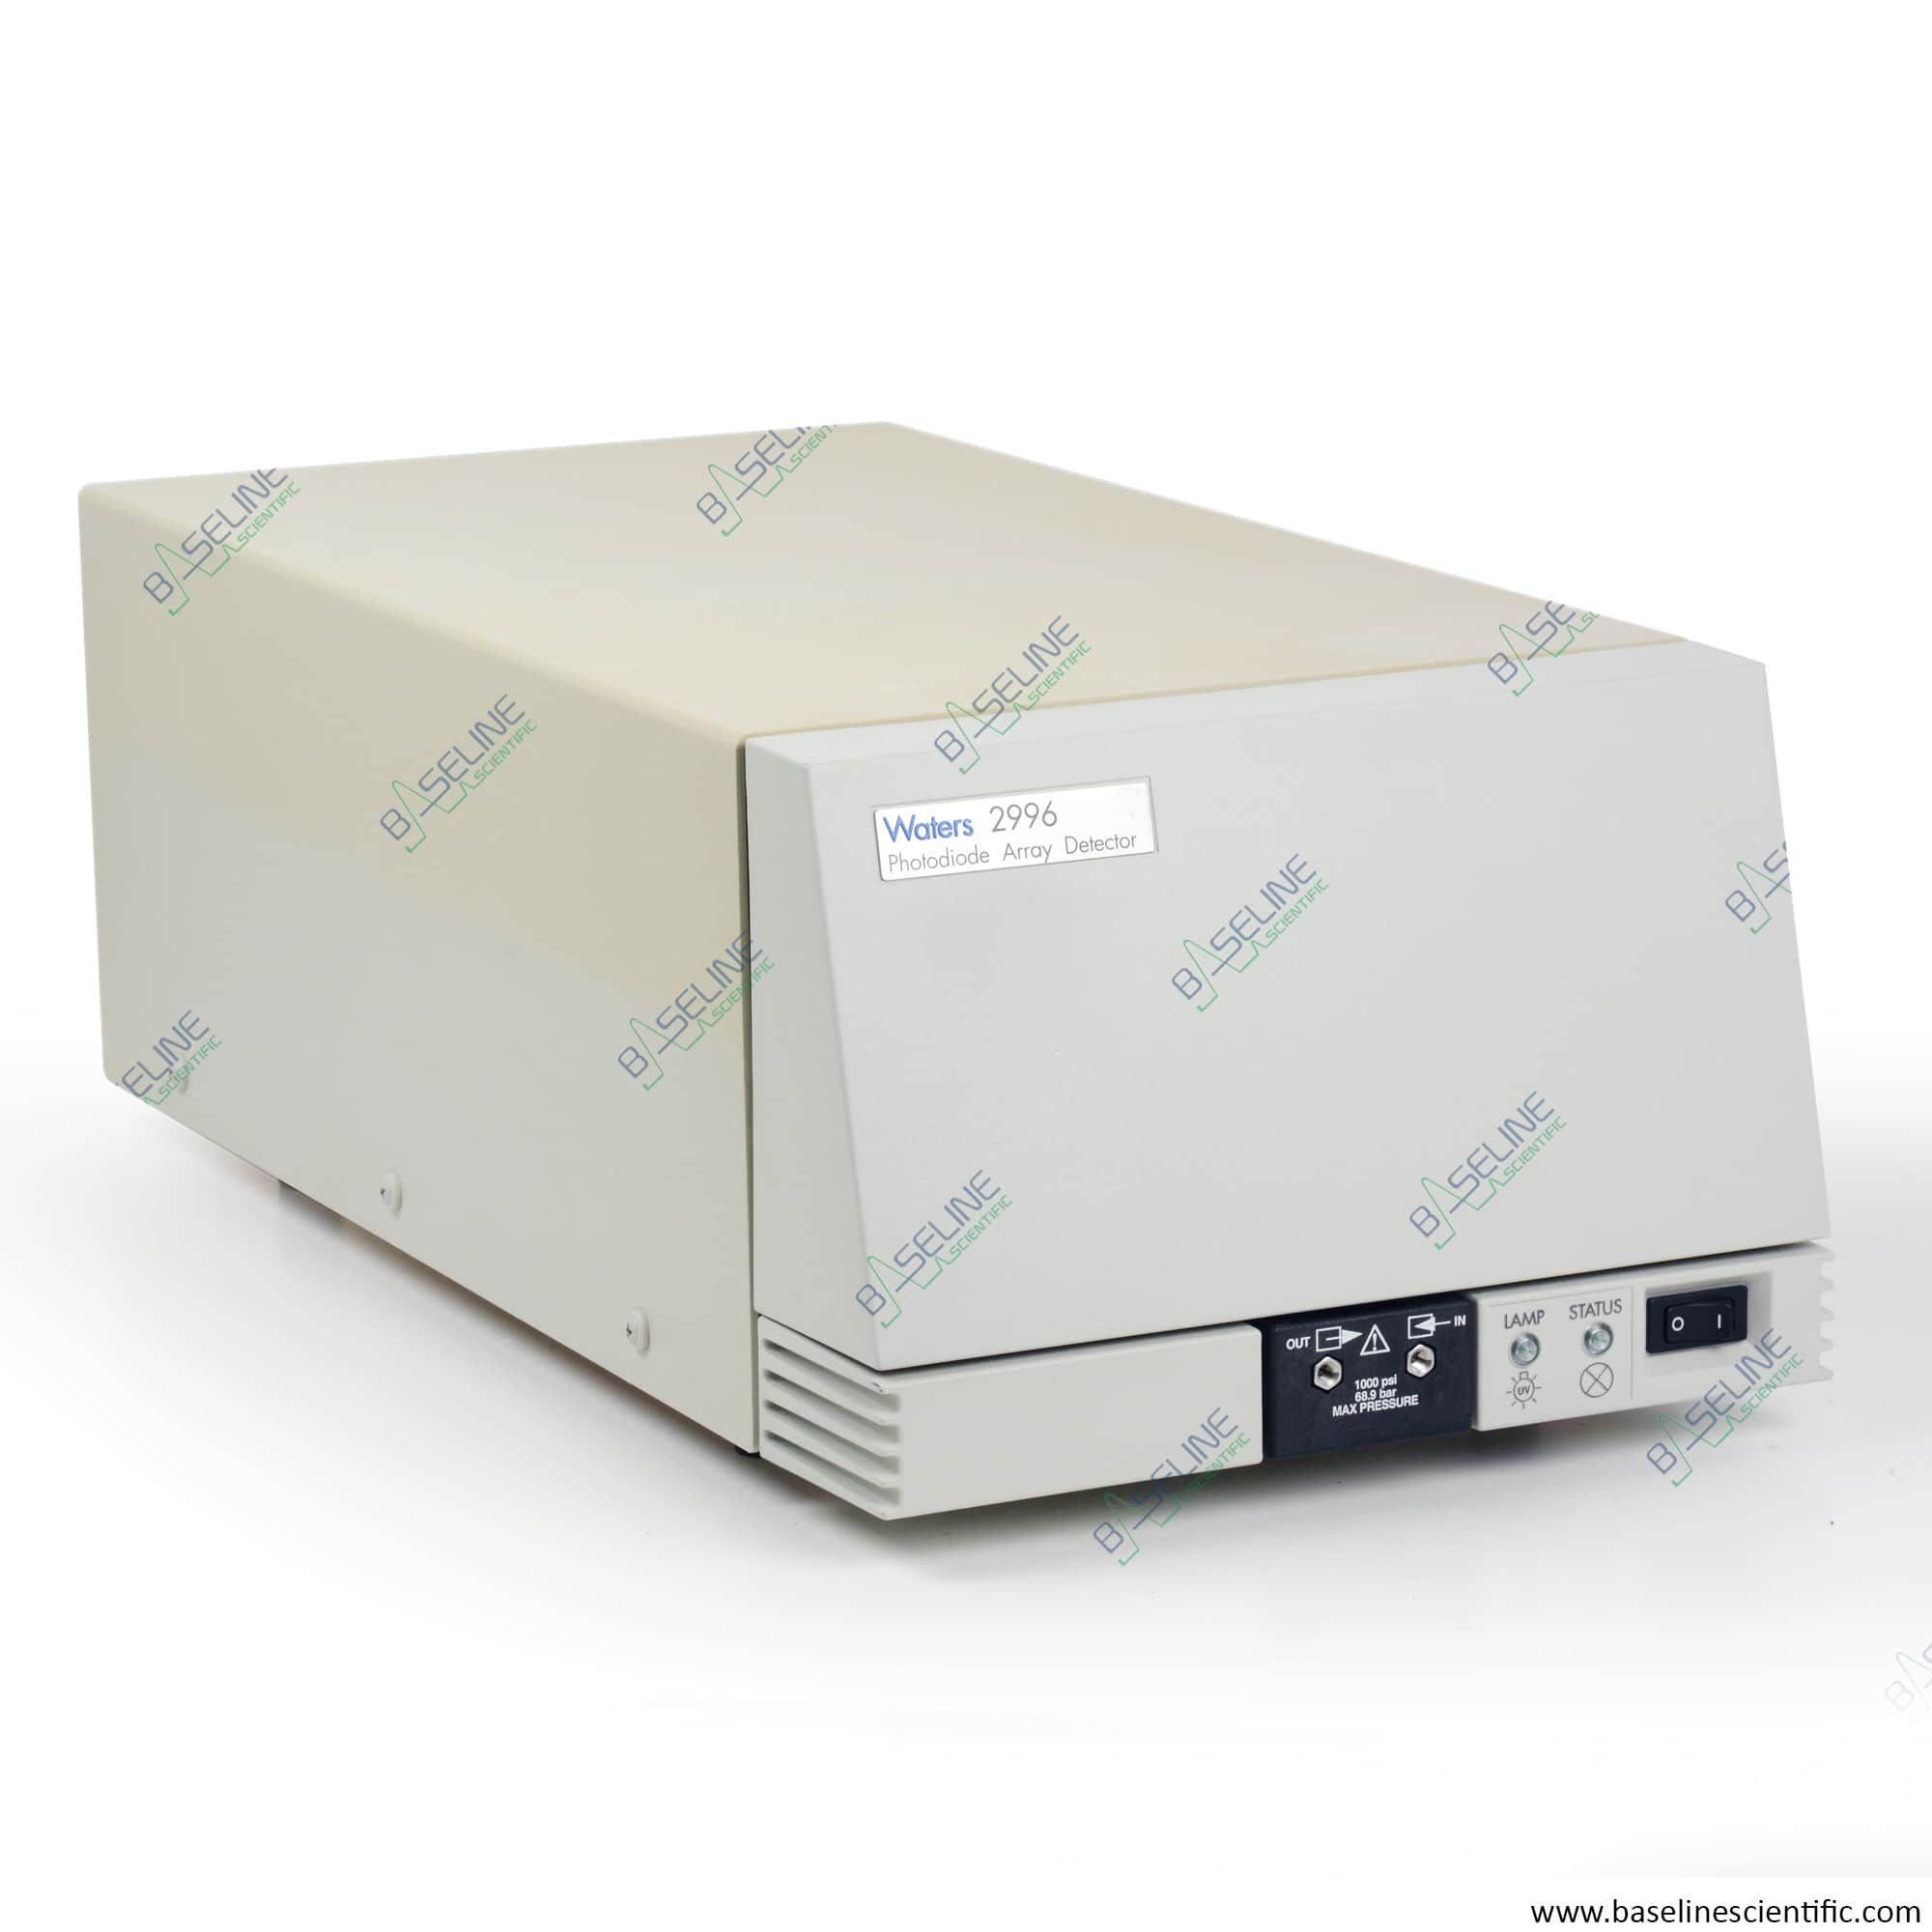 Refurbished Waters 2996 Photodiode Diode Array Detector with ONE YEAR WARRANTY